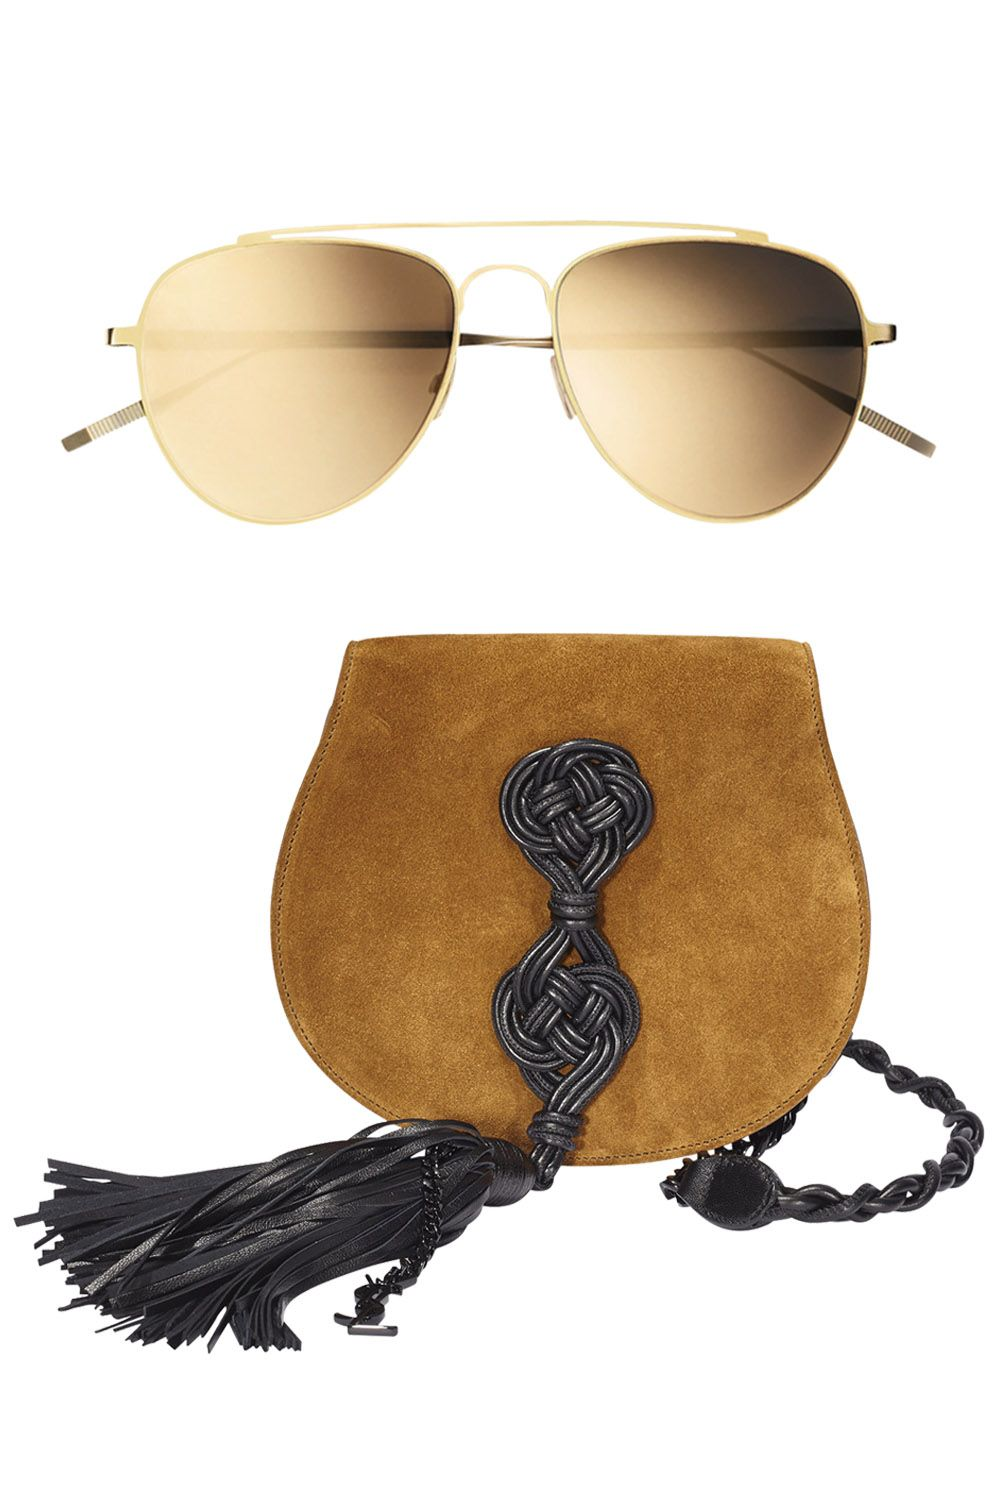 "<p>A Saint Laurent bag with Tomas Maier sunglasses inside.</p><p><strong>Tomas Maier </strong>sunglasses, $250, 212-988-8686; <strong>Saint Laurent by Hedi Slimane </strong><span class=""redactor-invisible-space"">bag, $1,990, 212-980-2970. </span></p>"